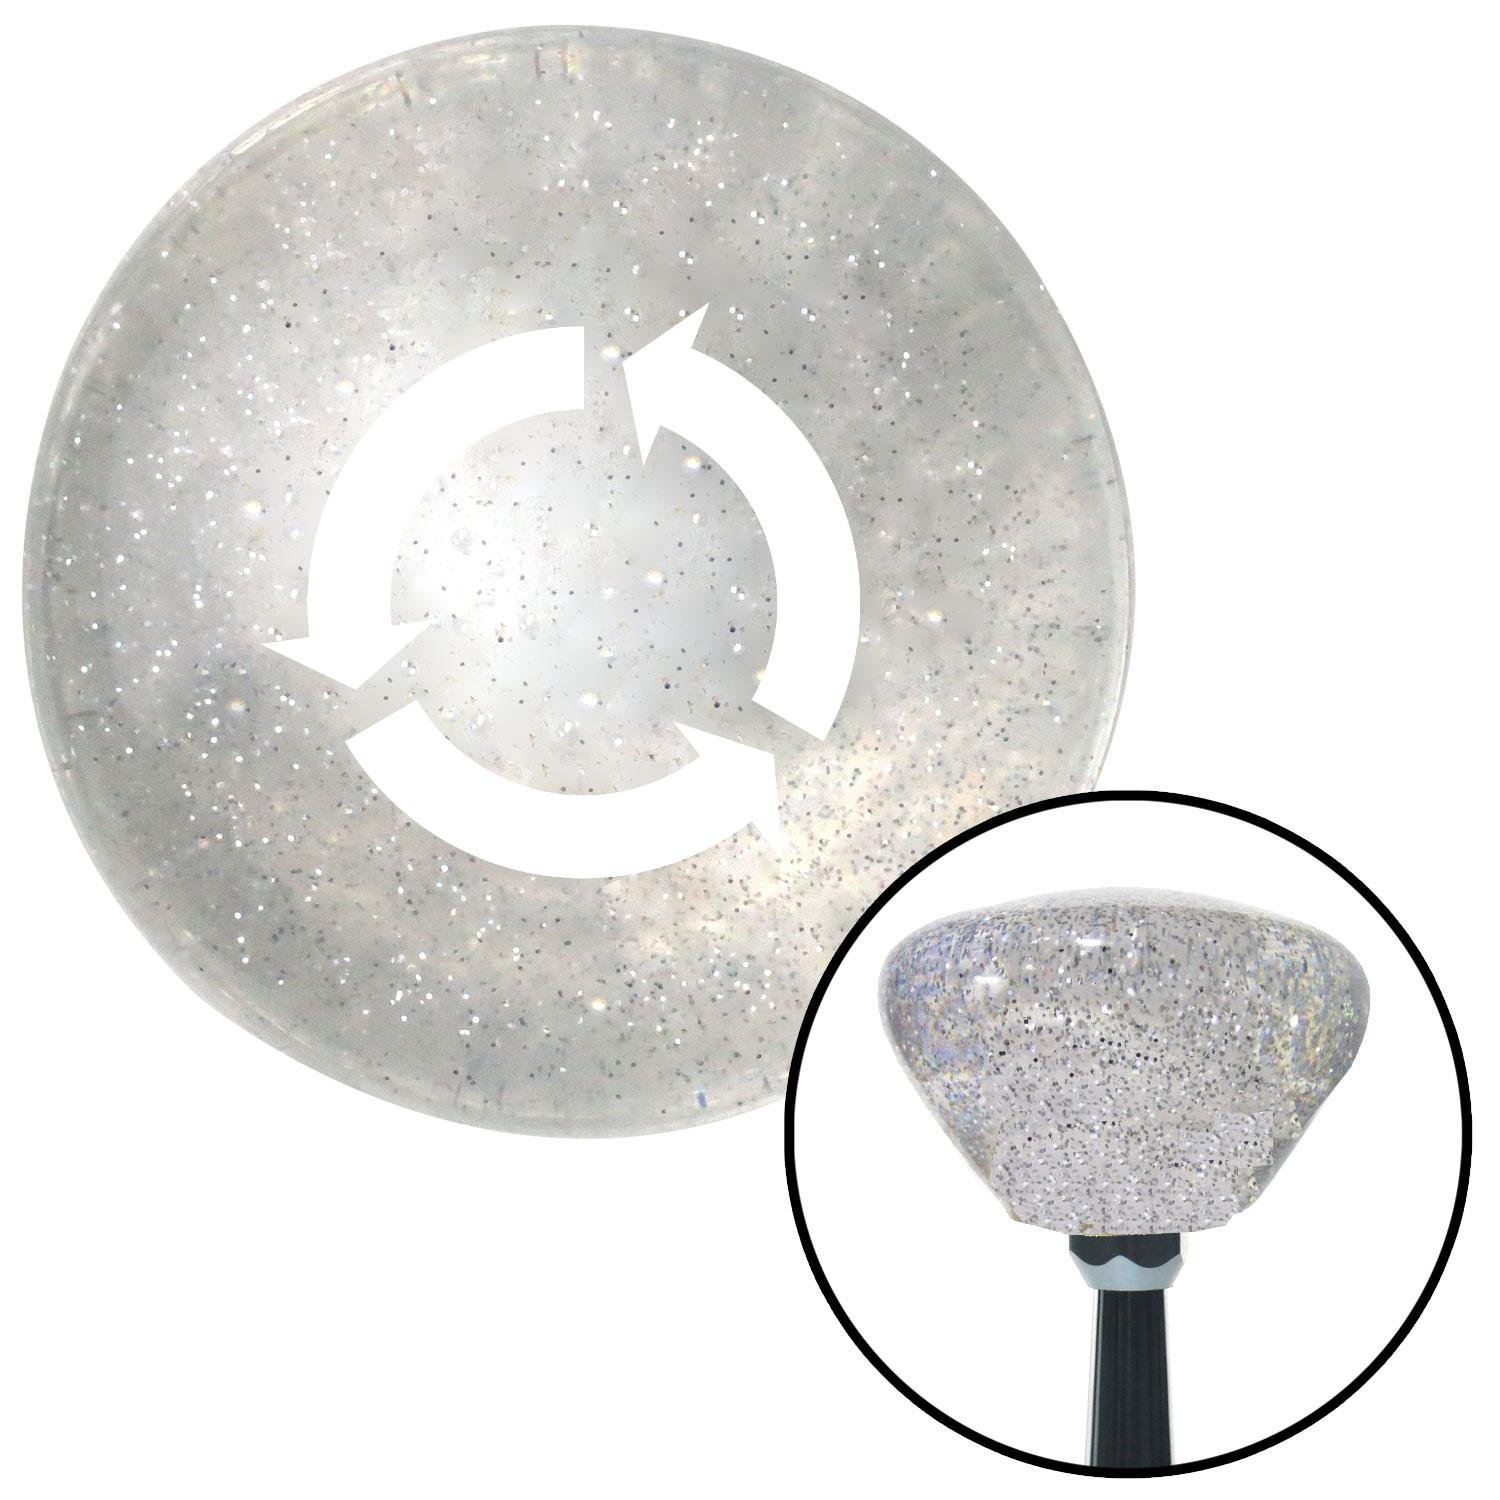 American Shifter 160038 Clear Retro Metal Flake Shift Knob with M16 x 1.5 Insert White Arrows in Circle